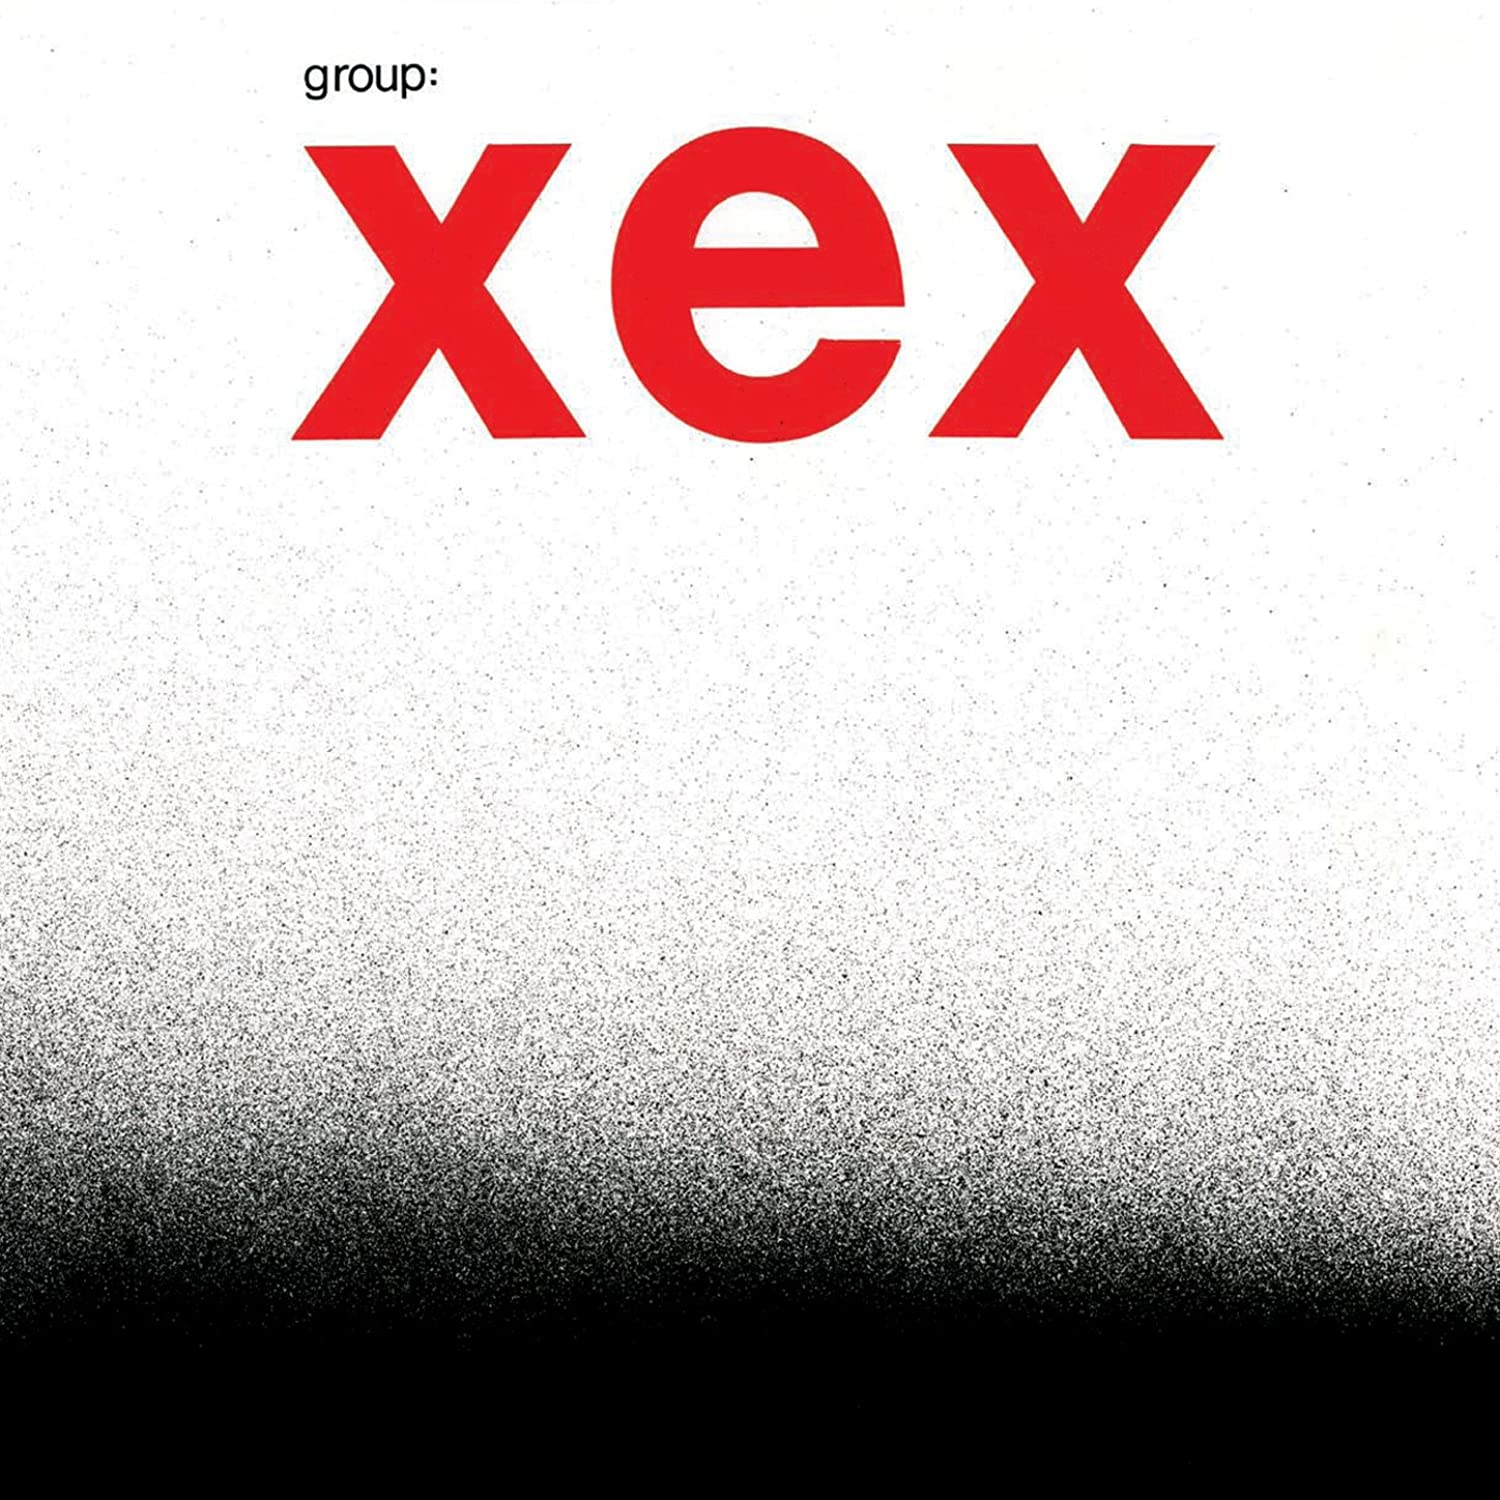 Xex - Group Xex